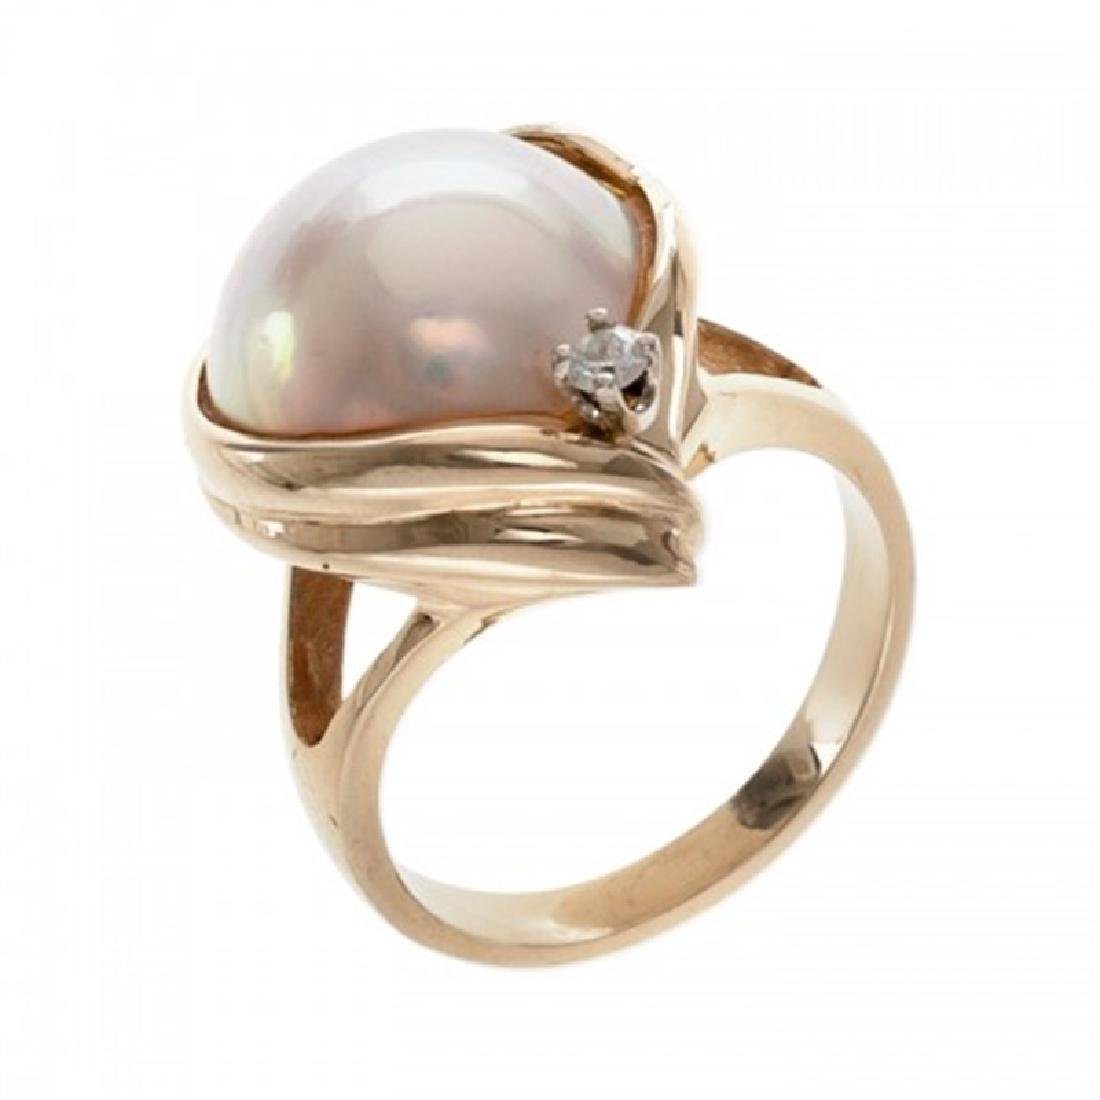 14.5-15.0mm Mabe Pearl Ring with Diamond